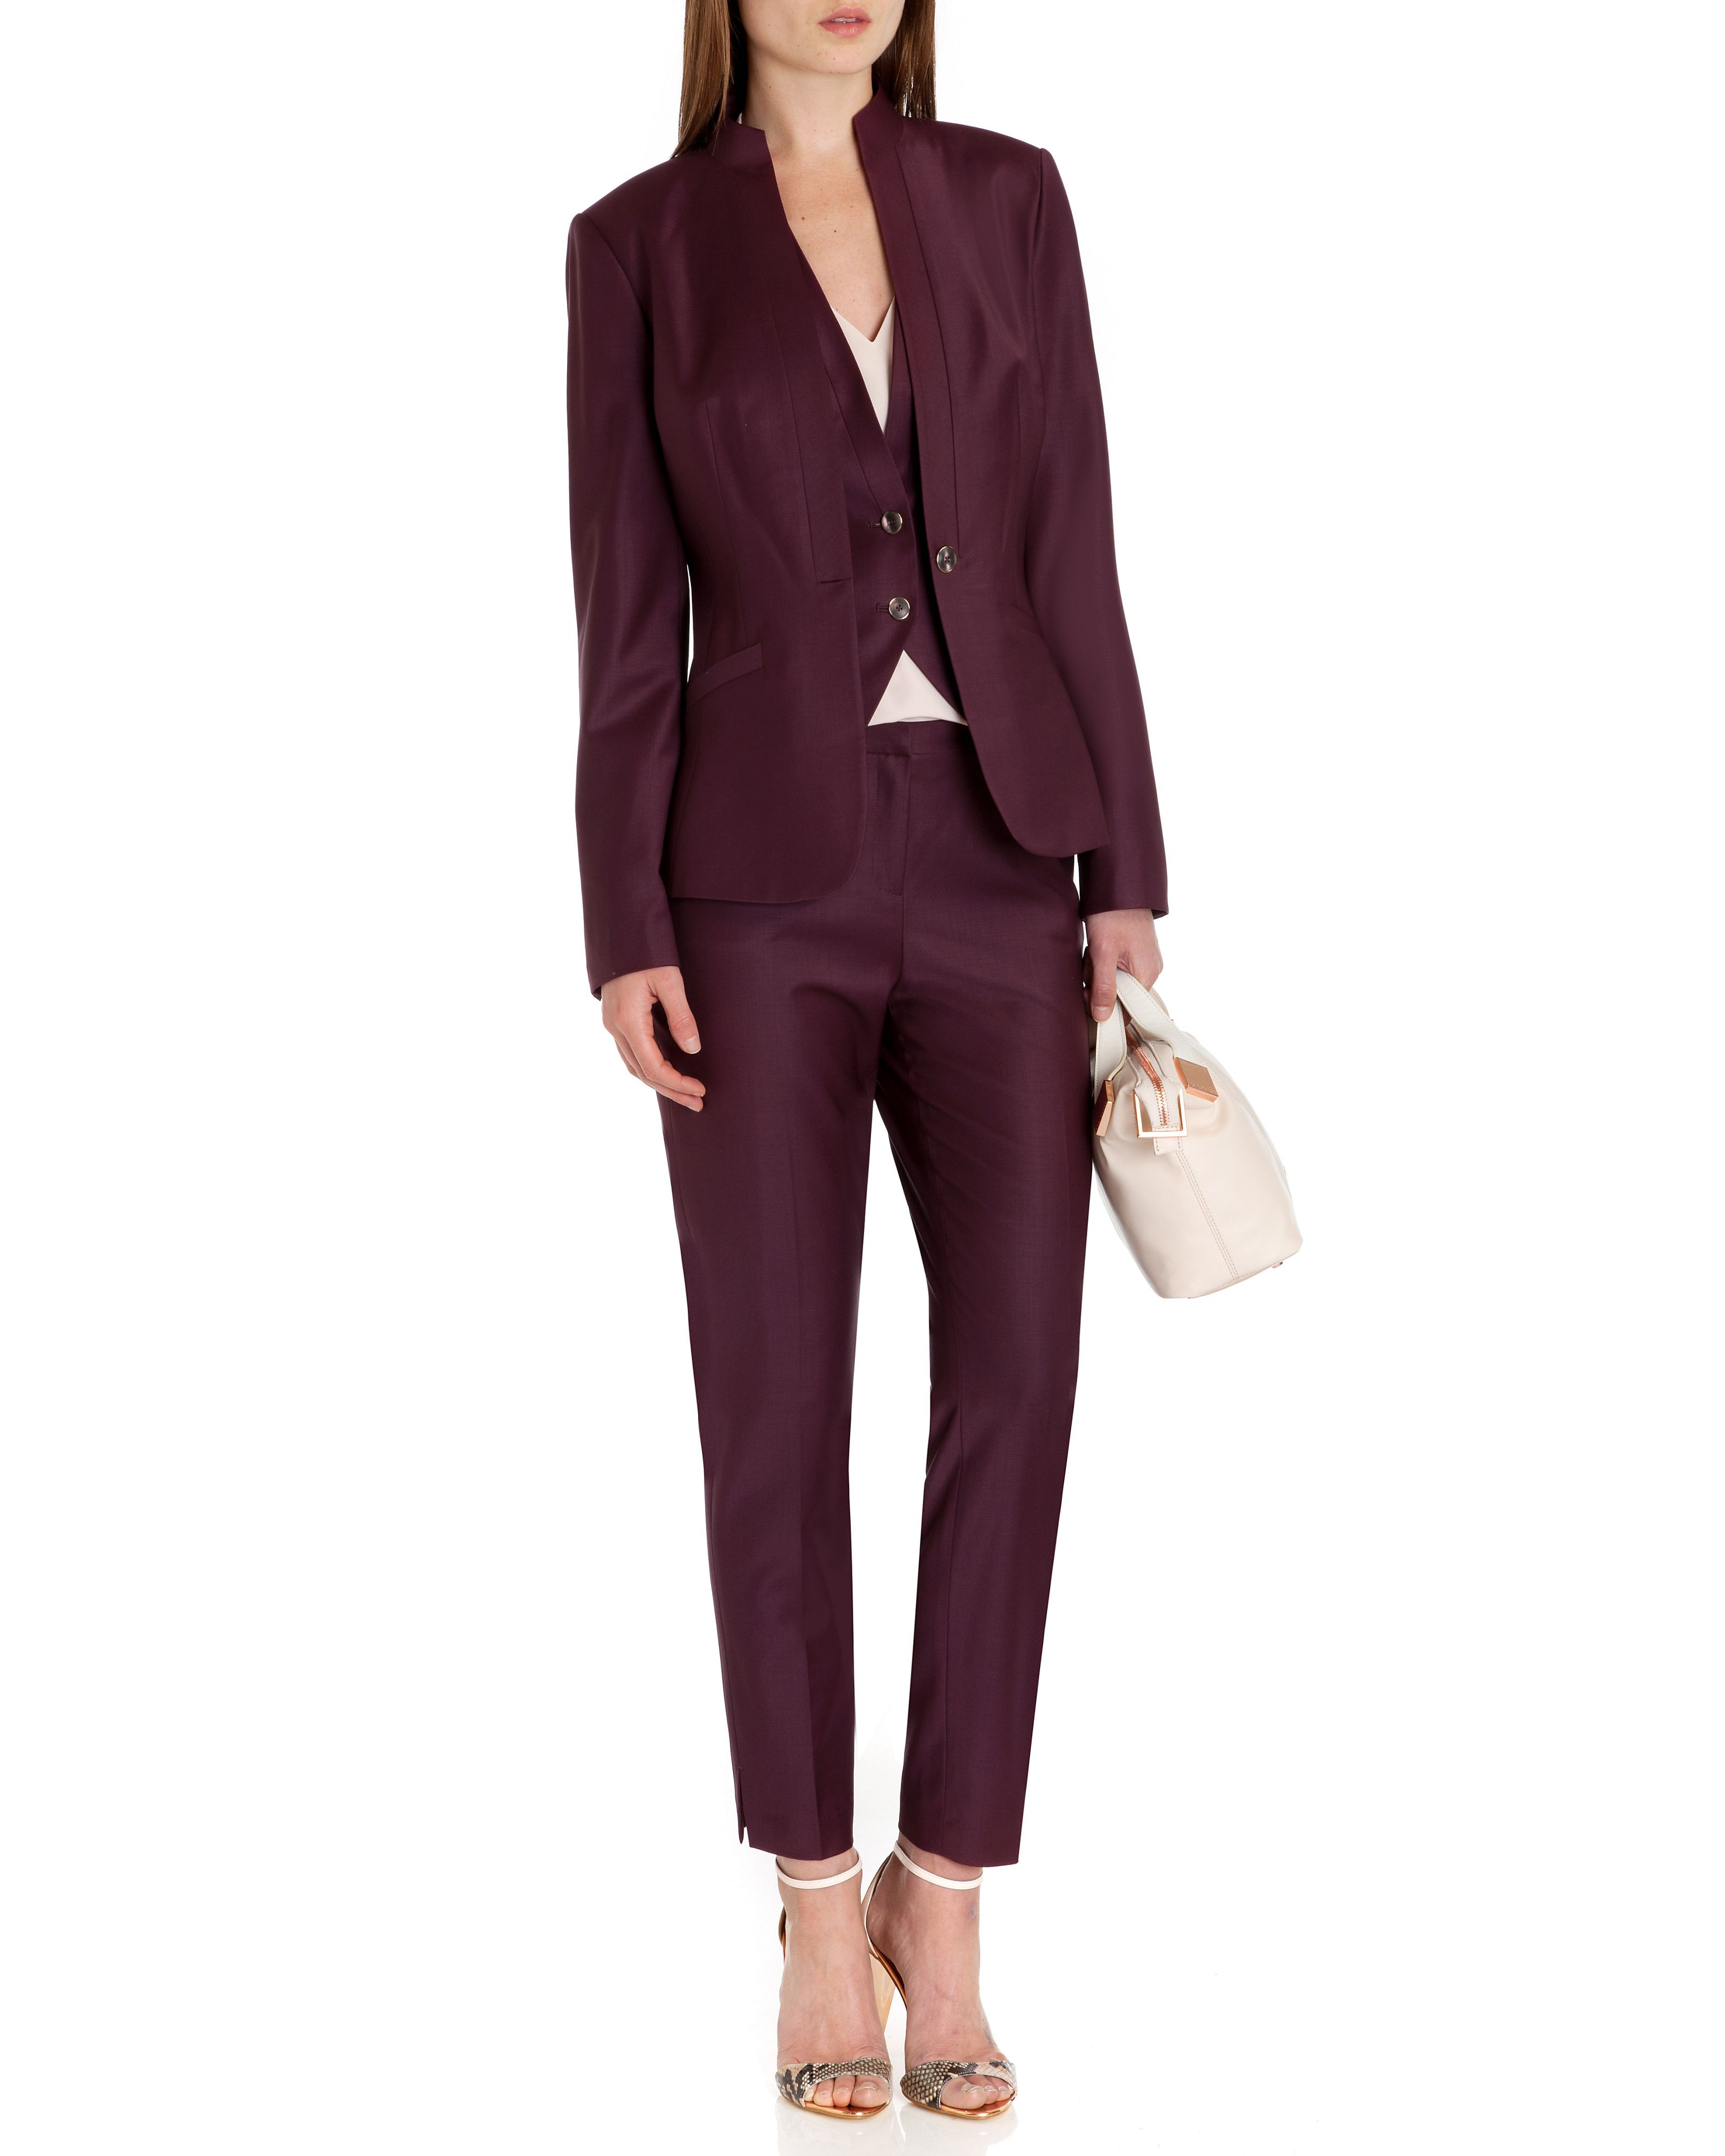 Thalea lavanta suit jacket